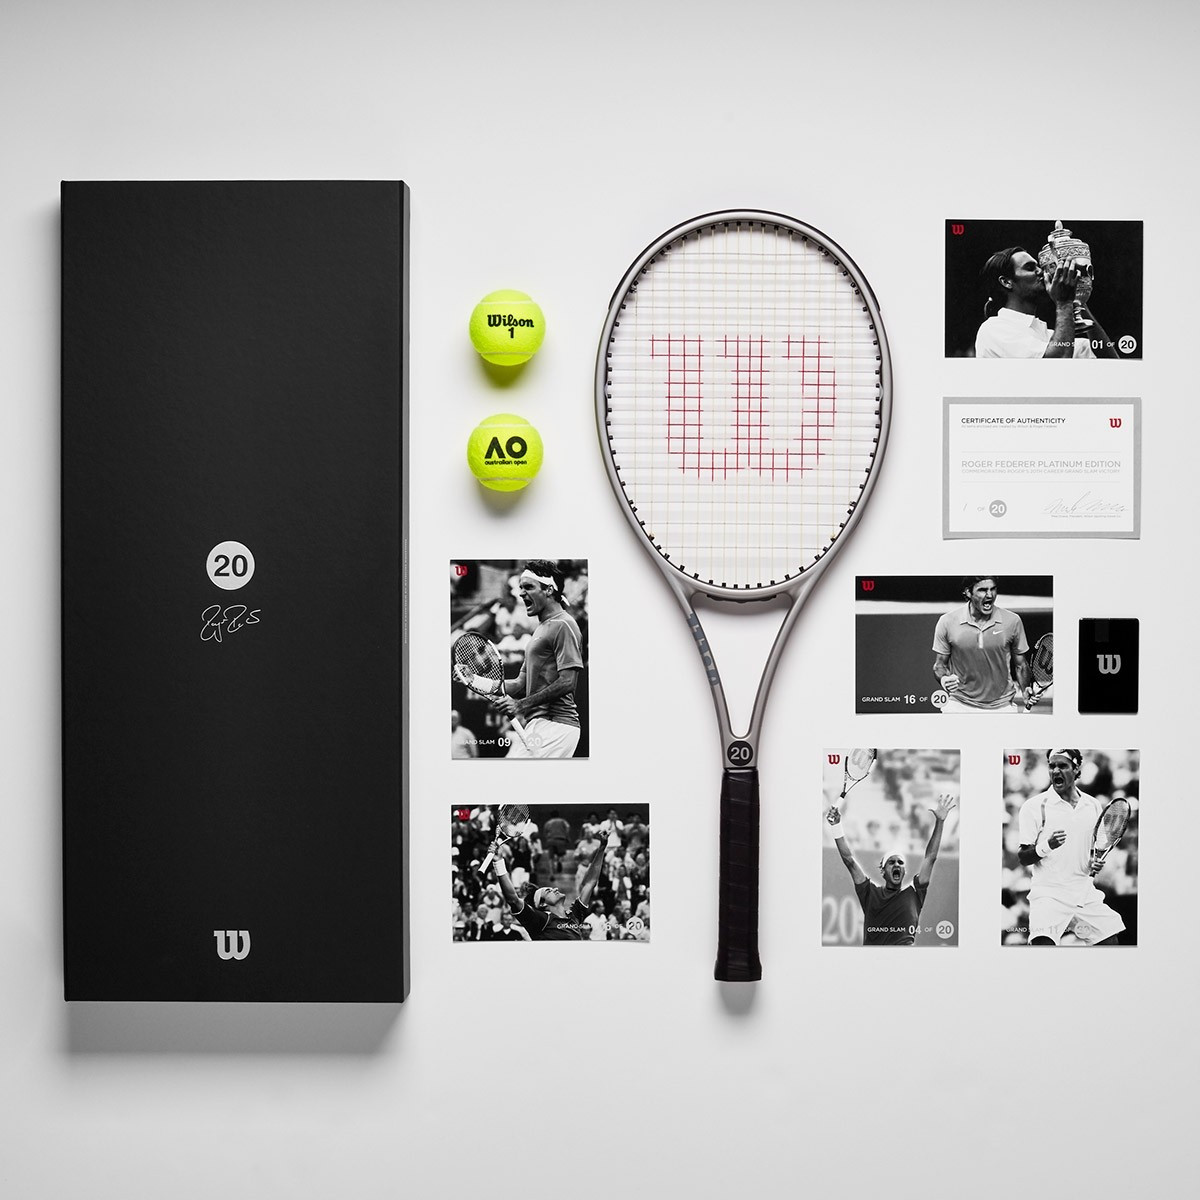 Roger Federer 20th Grand Slam Platinum Edition Racket Package Wilson 2006 autograph